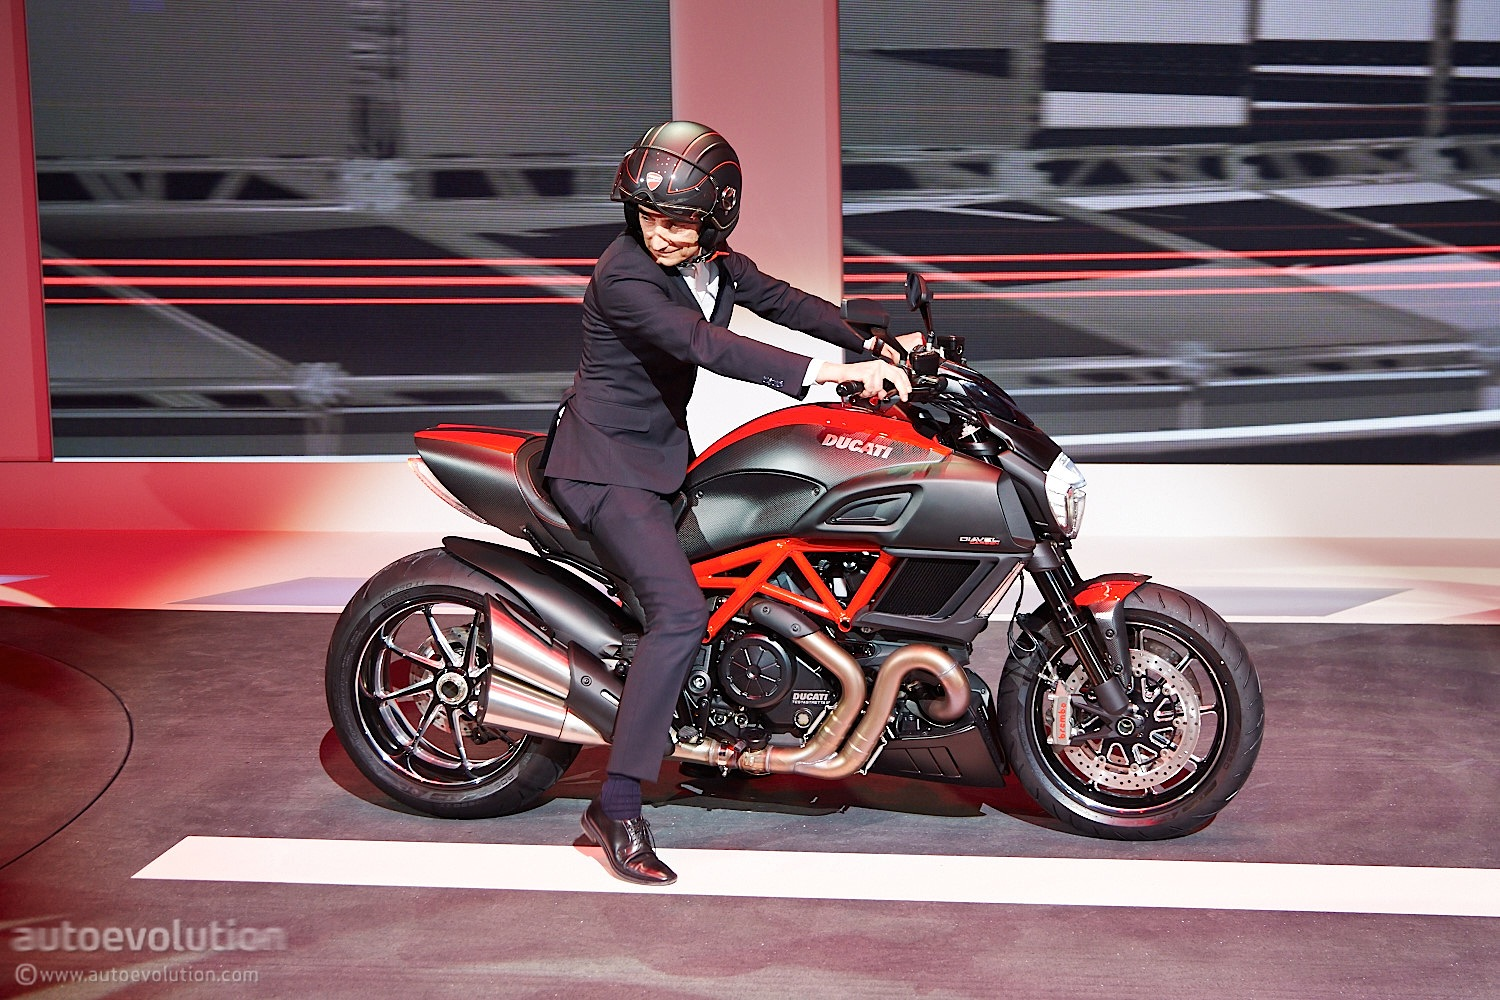 Buy Car Usa >> 2015 Ducati Diavel Live Pictures and Tech Specs - autoevolution